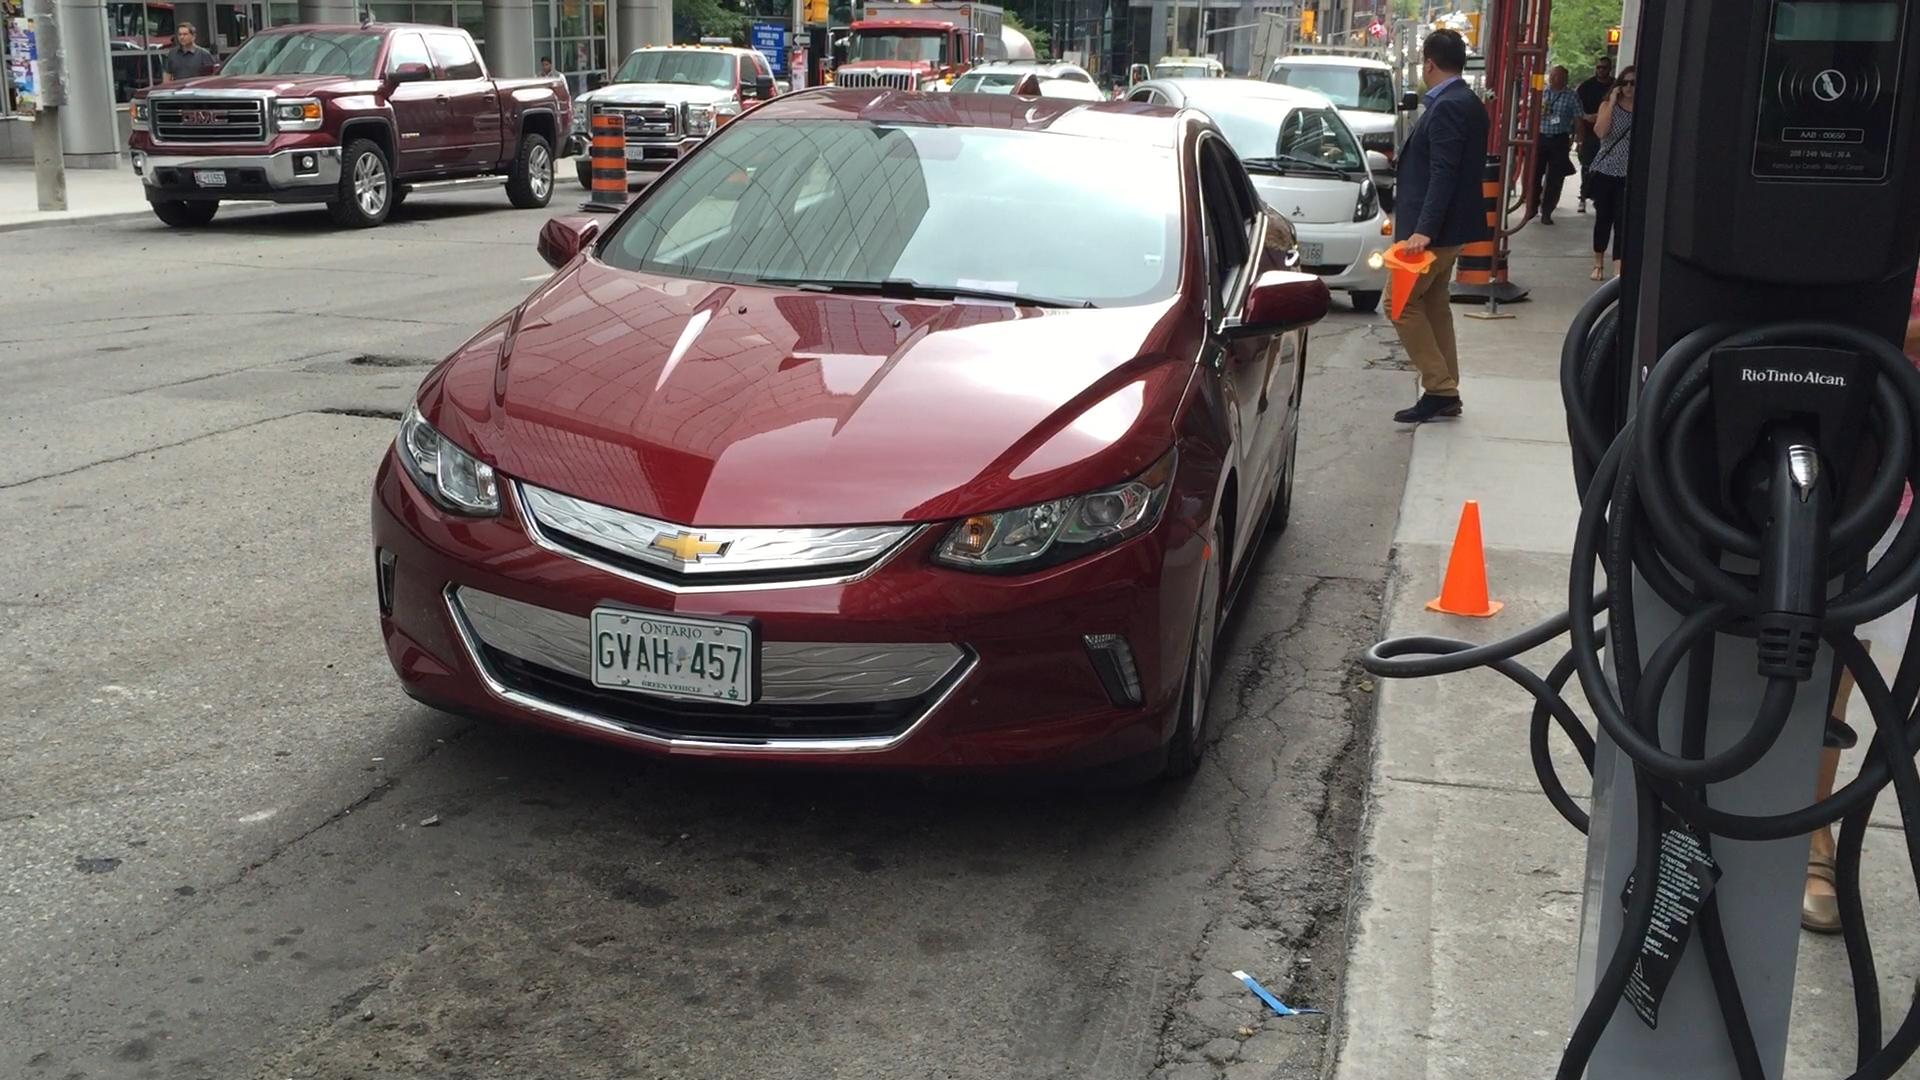 chevy volt essay The chevrolet volt is a plug-in hybrid car manufactured by general motors, also marketed in rebadged variants as the buick velite 5 in china.